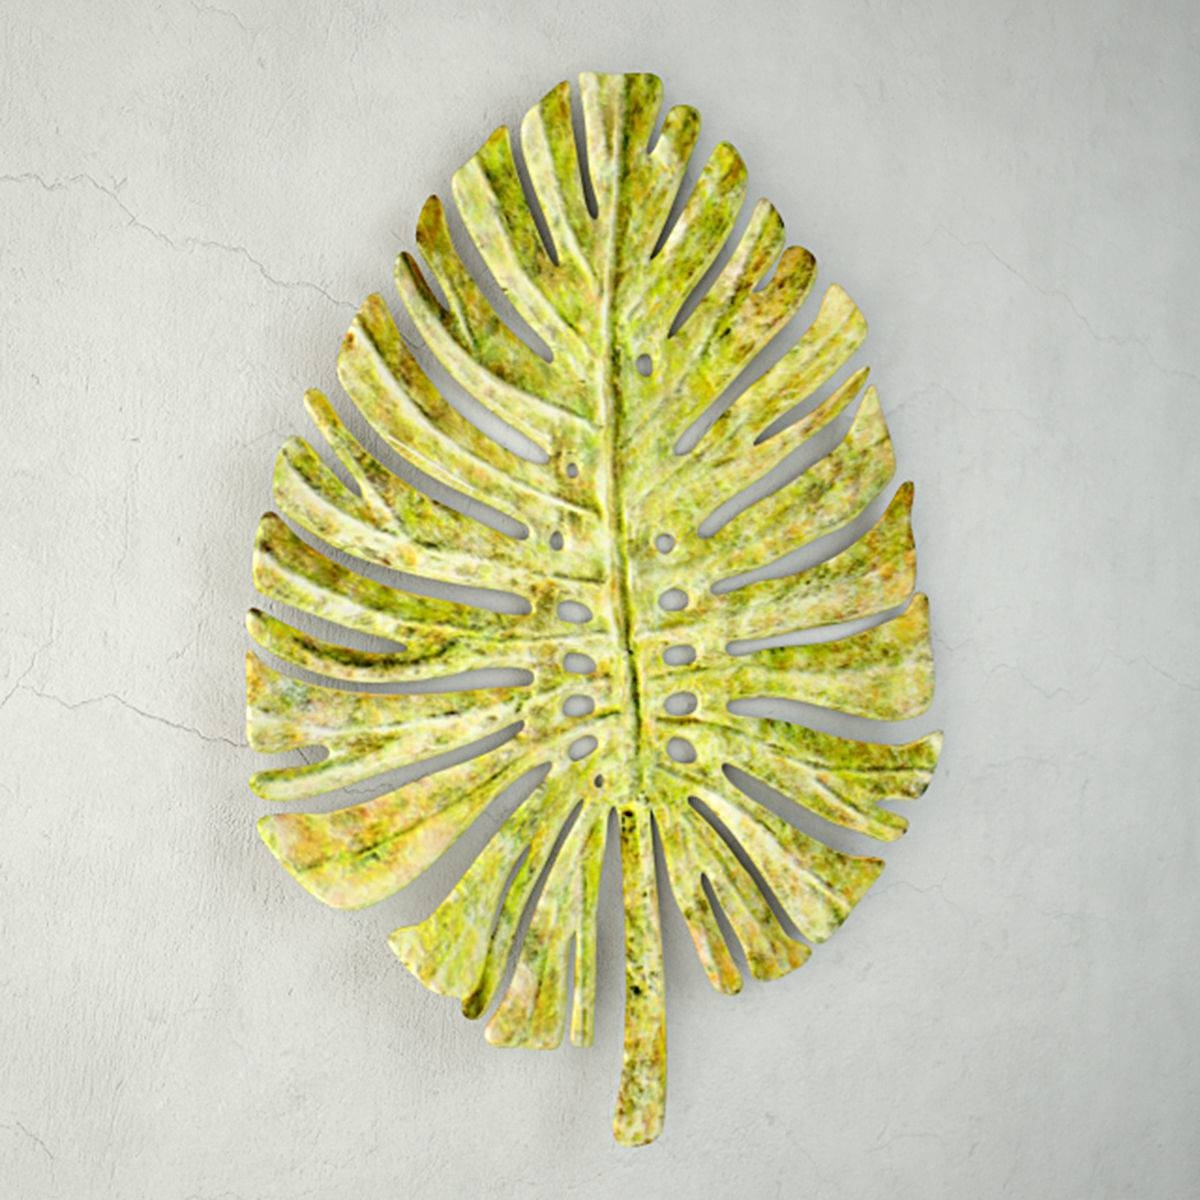 3D Model Green Metal Leaf Wall Art | Cgtrader Throughout Most Recent Green Metal Wall Art (View 2 of 20)